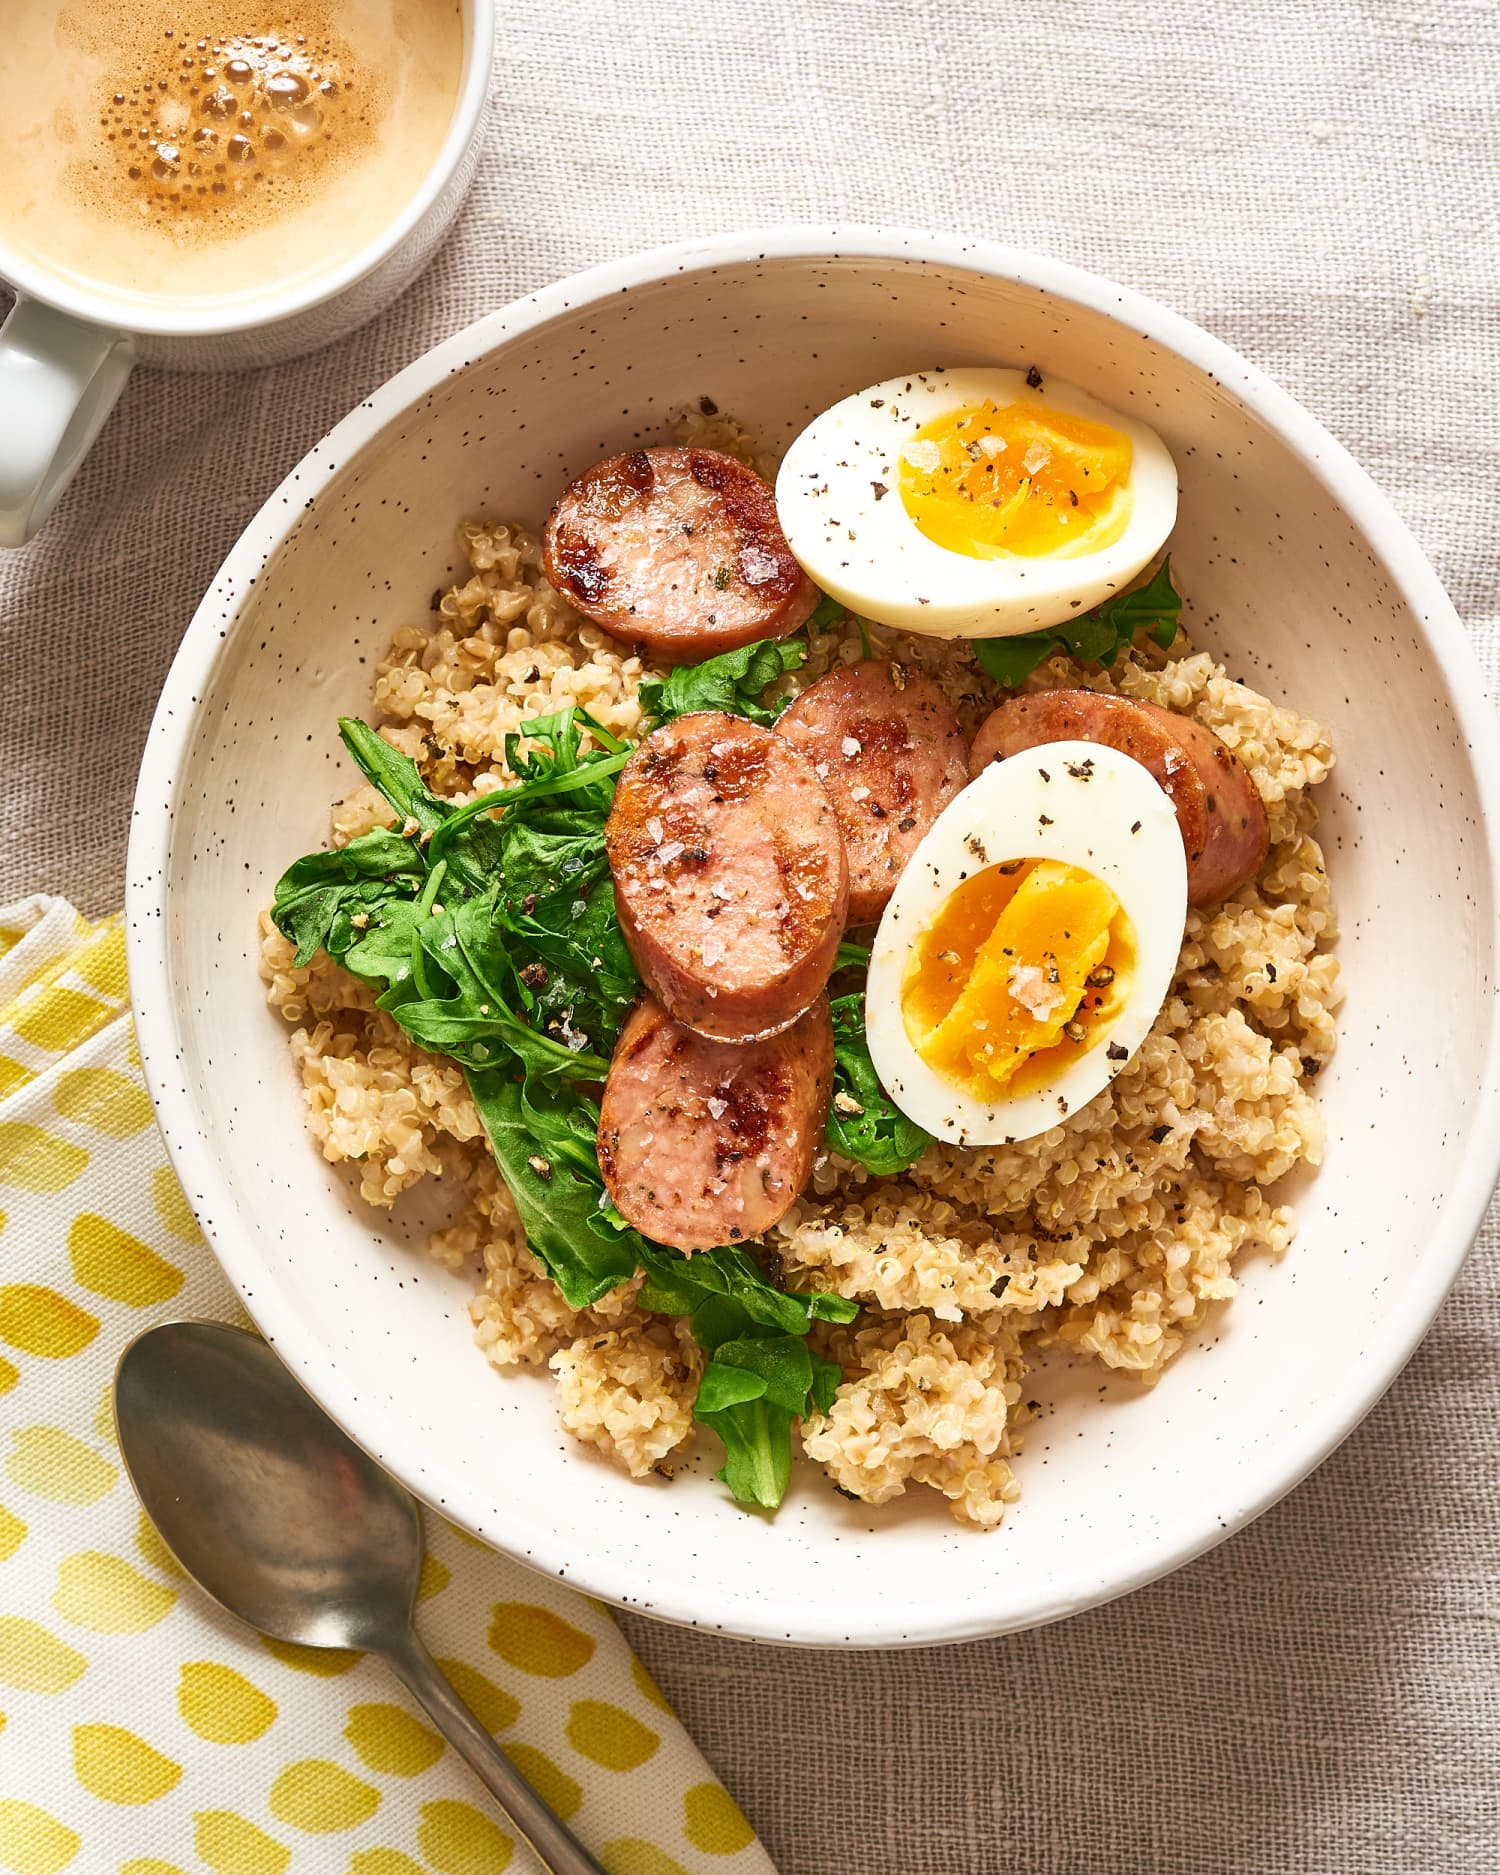 10 Satisfying High-Protein Breakfast Recipes